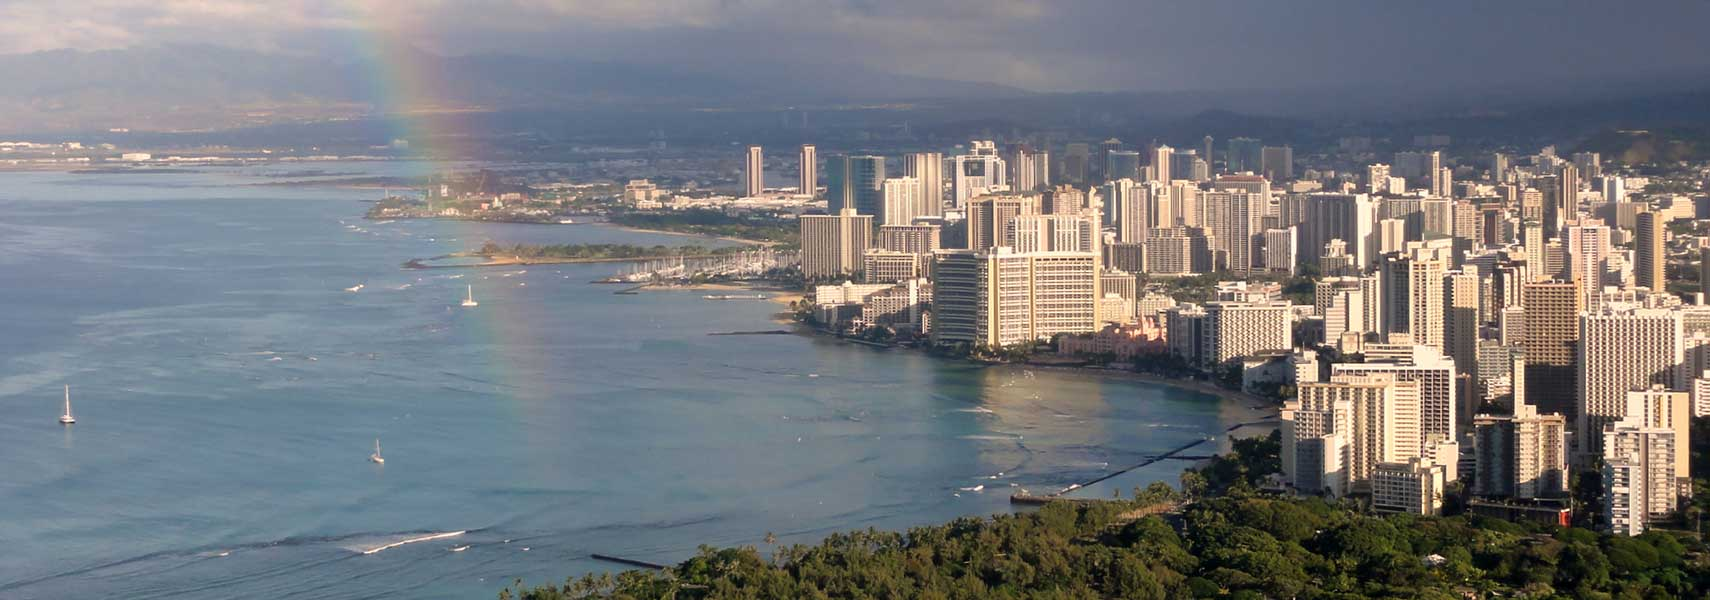 Google Map of Honolulu, Hawaii, USA - Nations Online Project on